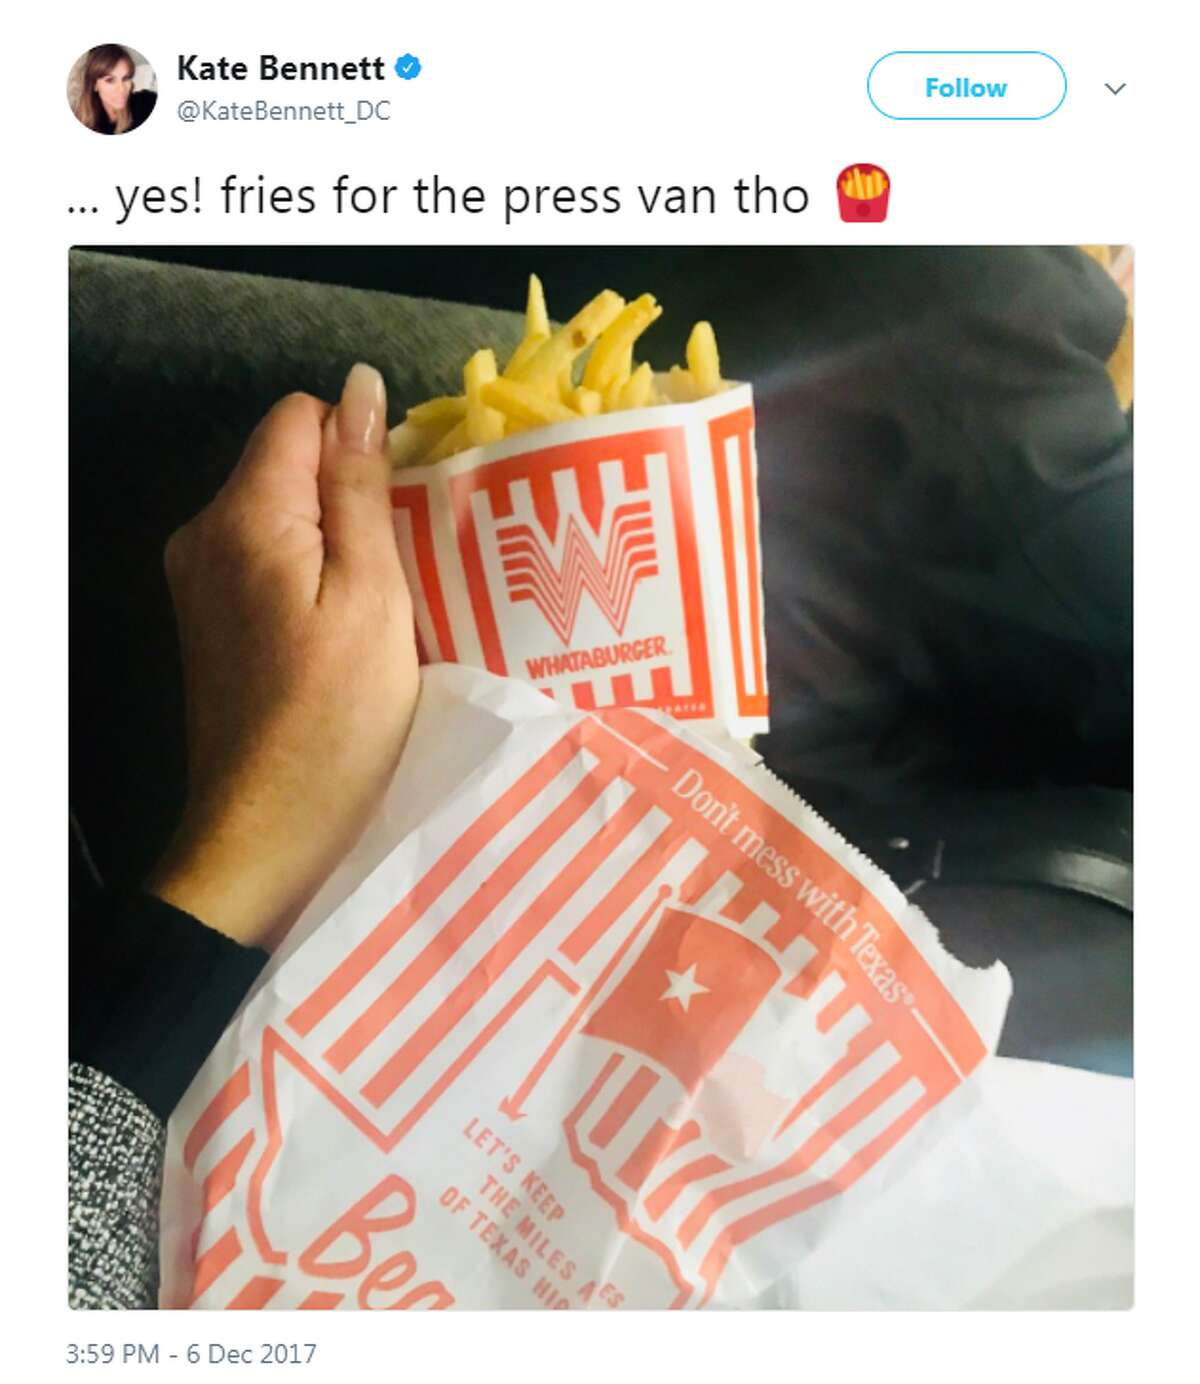 While visiting the Texas Coast for to check on recovery efforts since Hurricane Harvey landed in late August, Trump and second lady Karen Pence stopped by Whataburger. Her Director of Communications, Stephanie Grisham, tweeted a photo of the first and second lady ordering their meals.